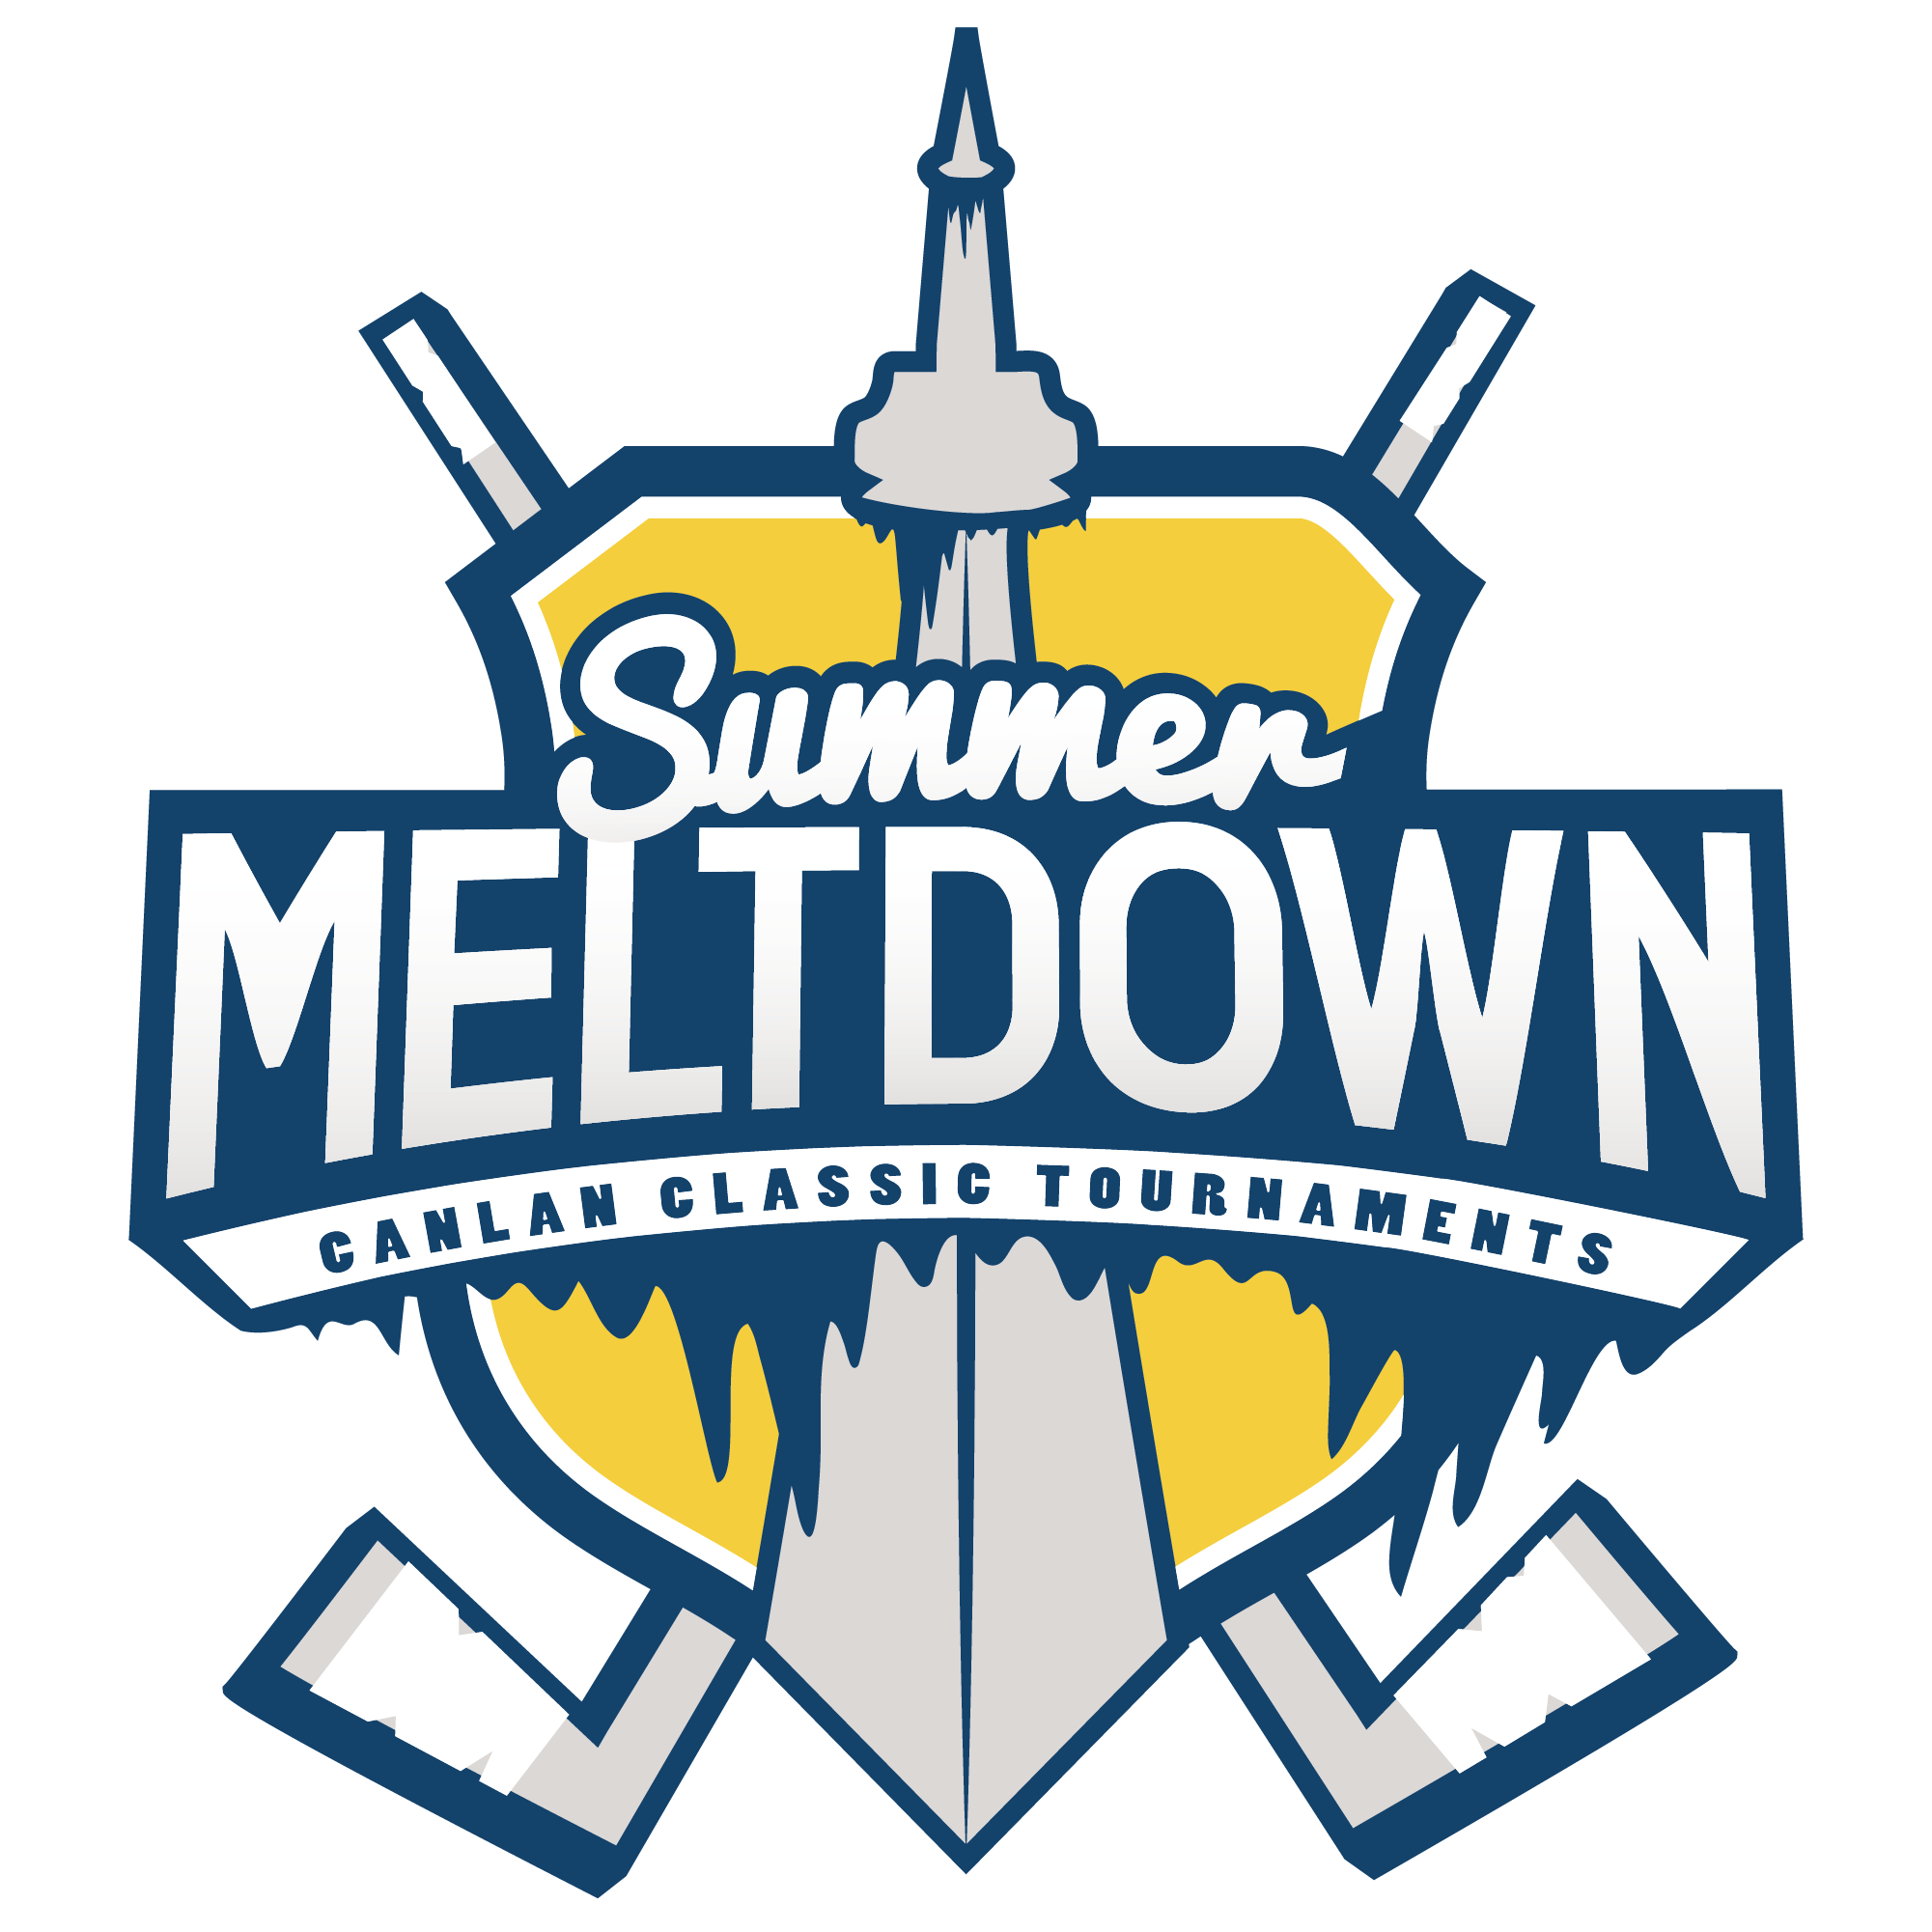 TO-Summer-Meltdown